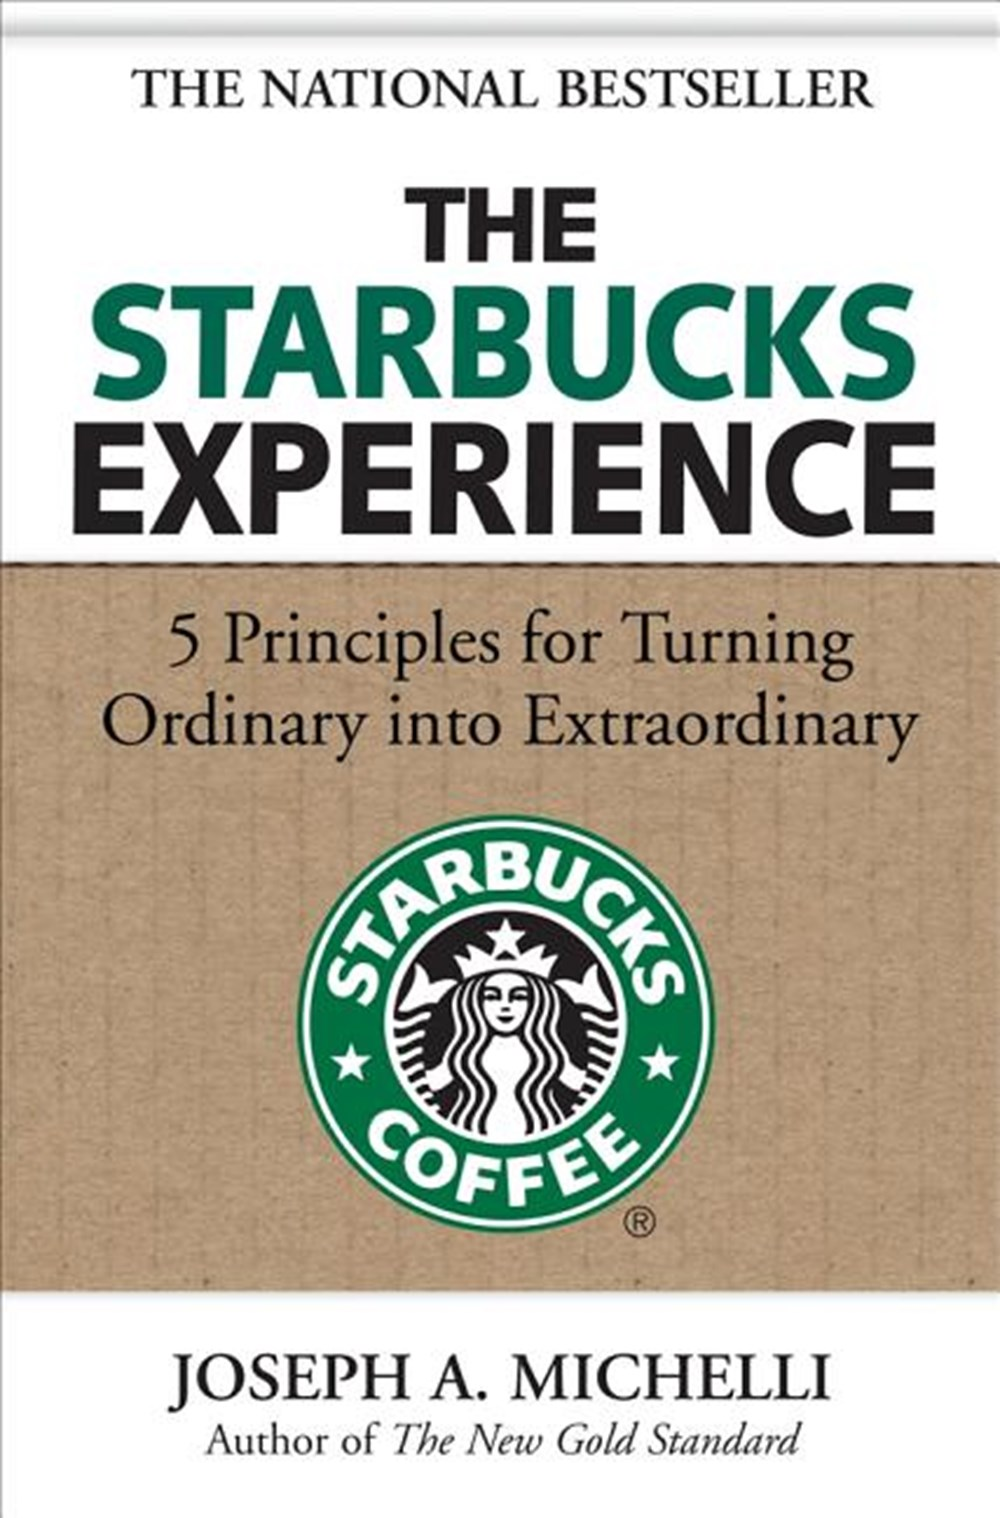 Starbucks Experience 5 Principles for Turning Ordinary Into Extraordinary